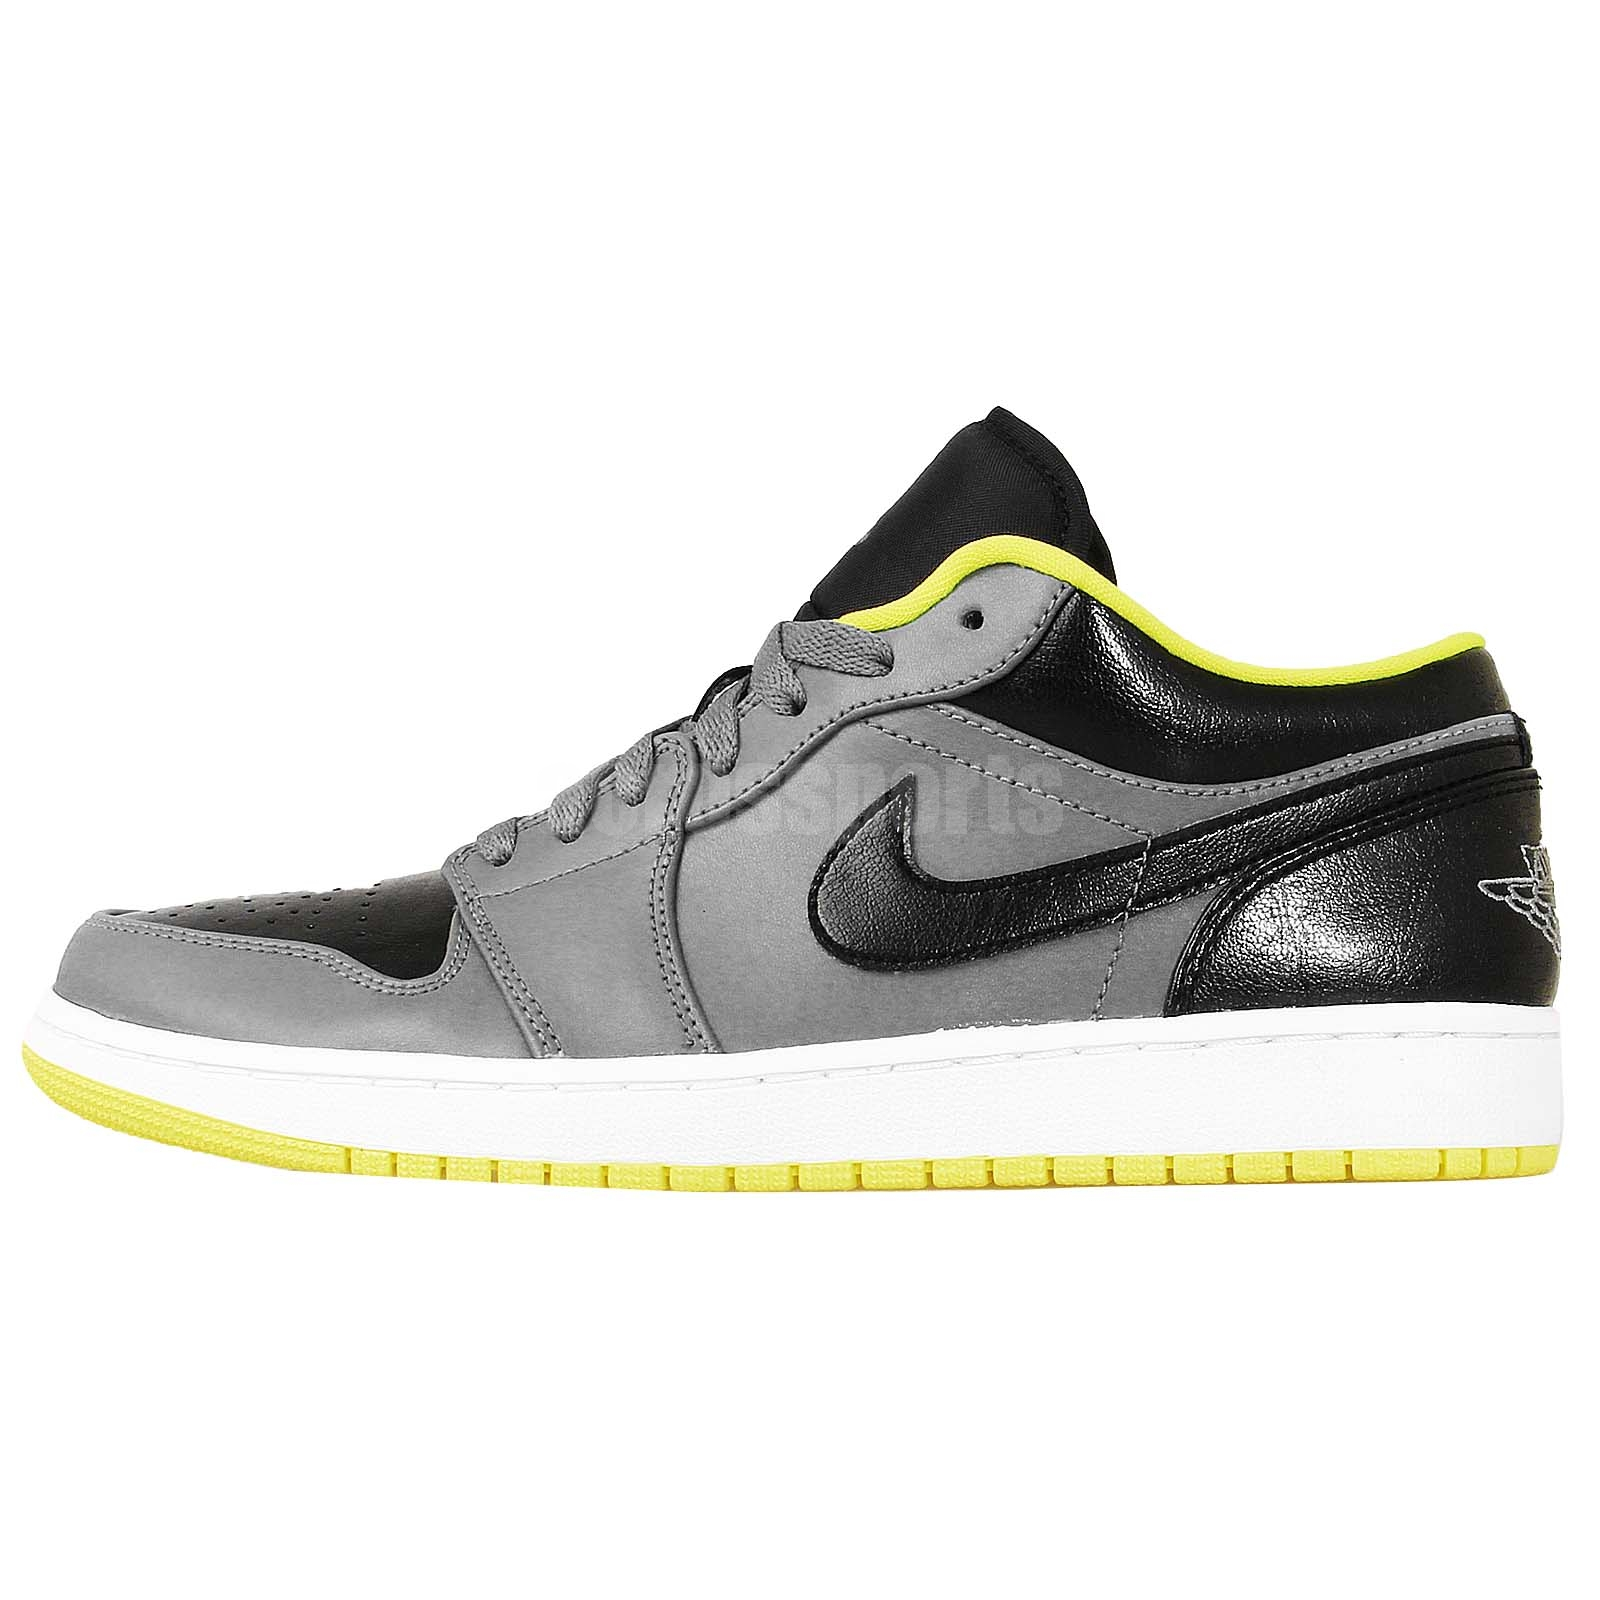 Nike Air Jordan 1 Low Black Grey Yellow AJ1 2014 Mens ...